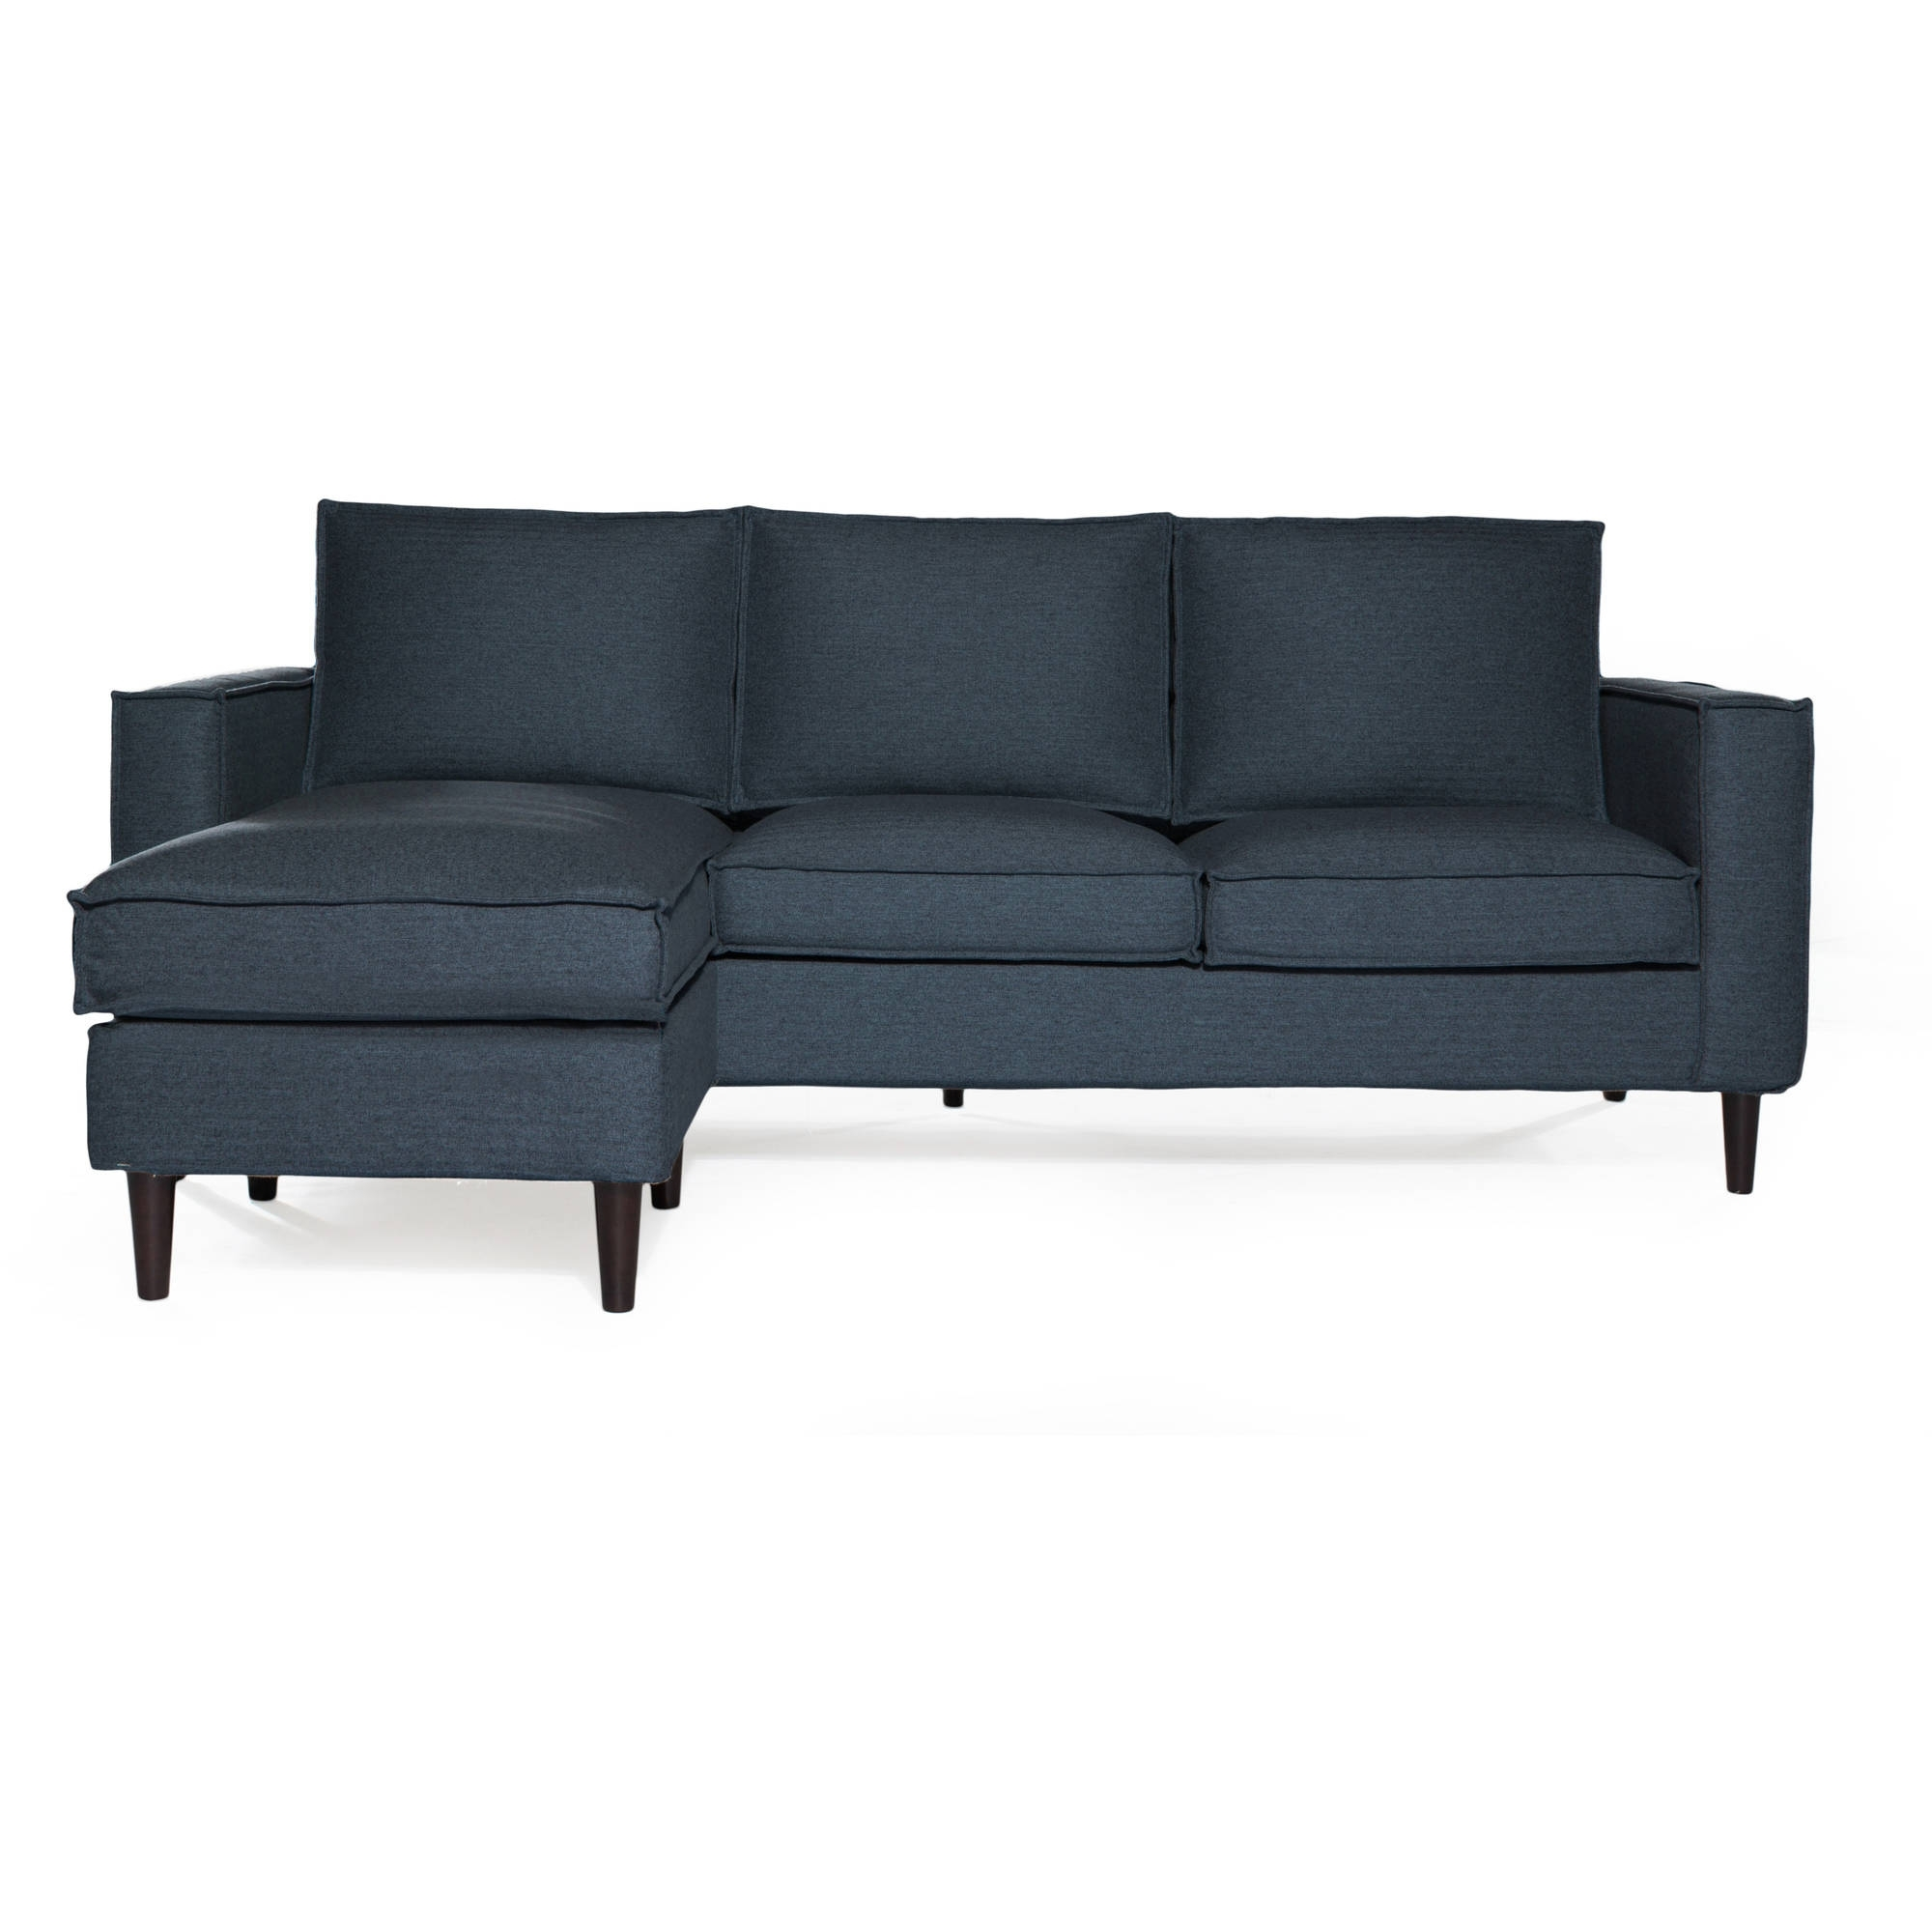 Famous Sofas & Couches – Walmart Regarding Sectional Sofas For Campers (View 5 of 20)